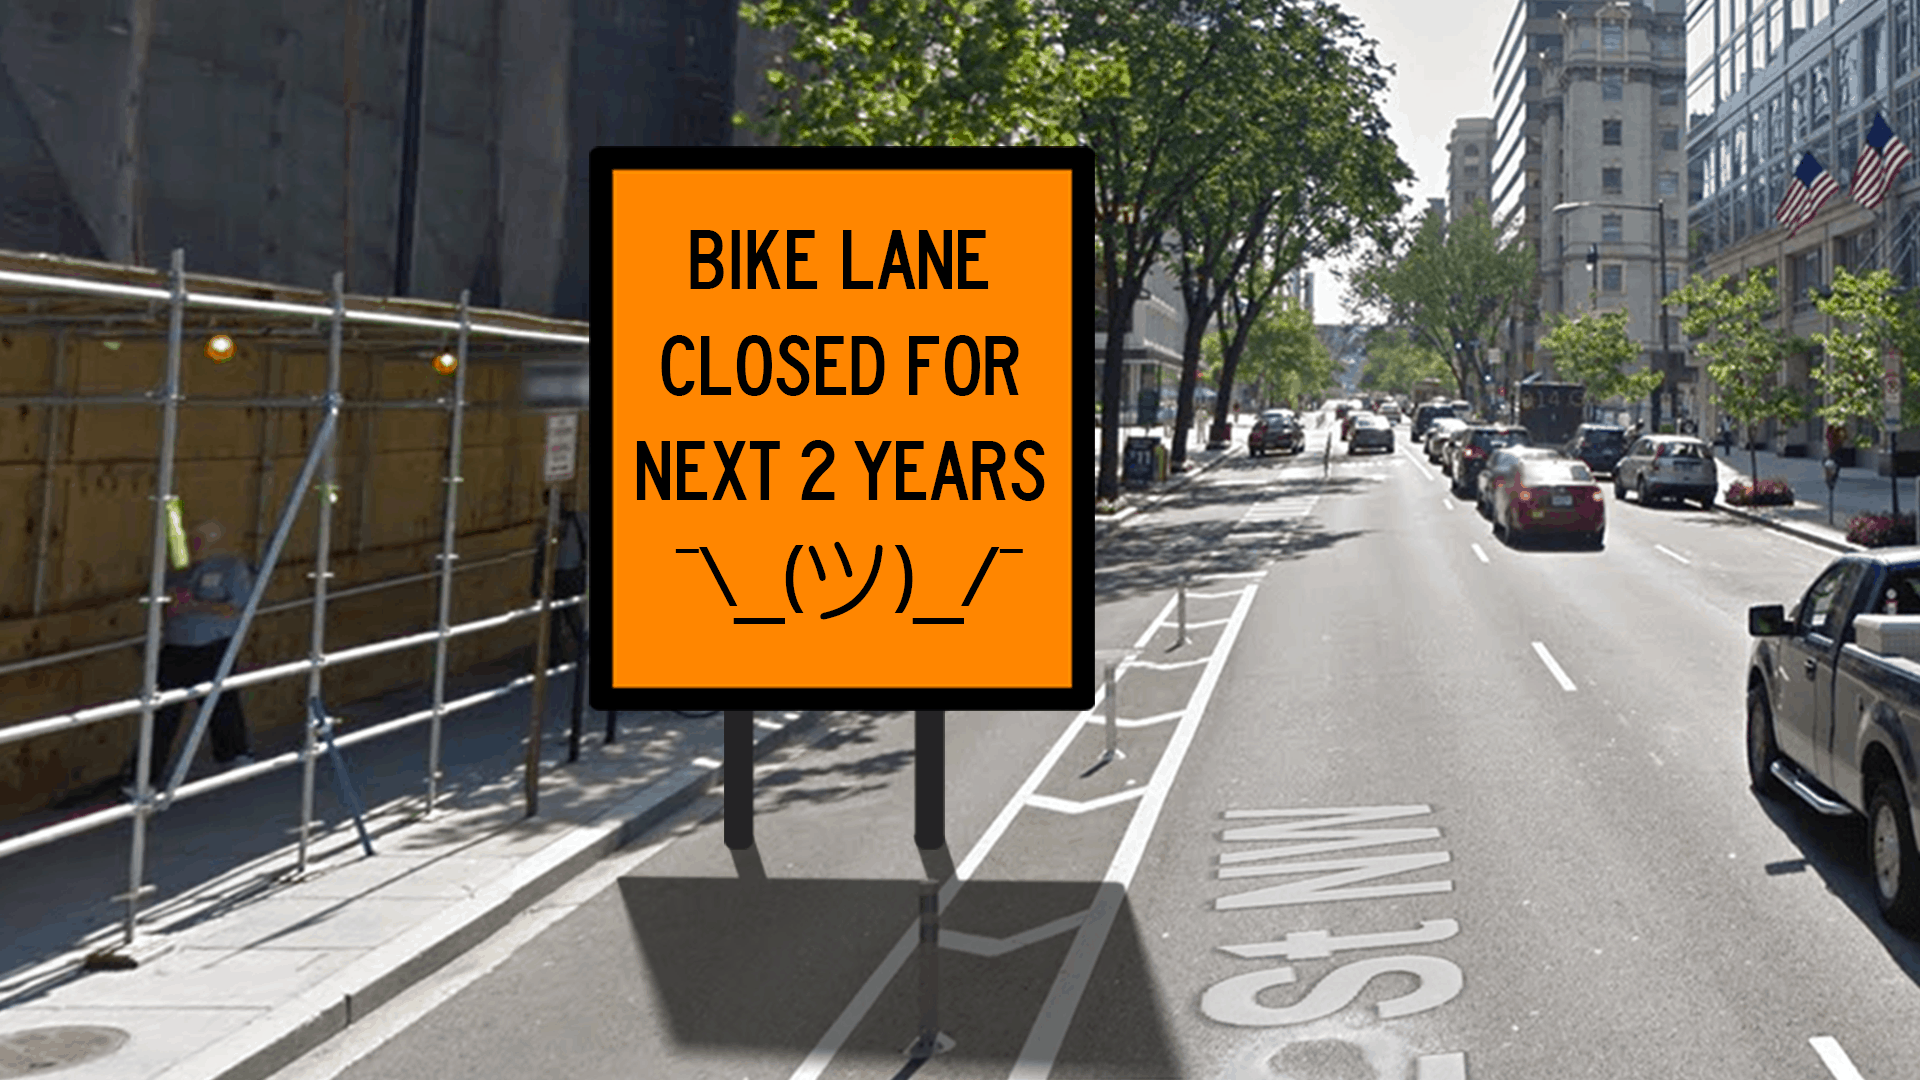 bike lane closed for two years.png